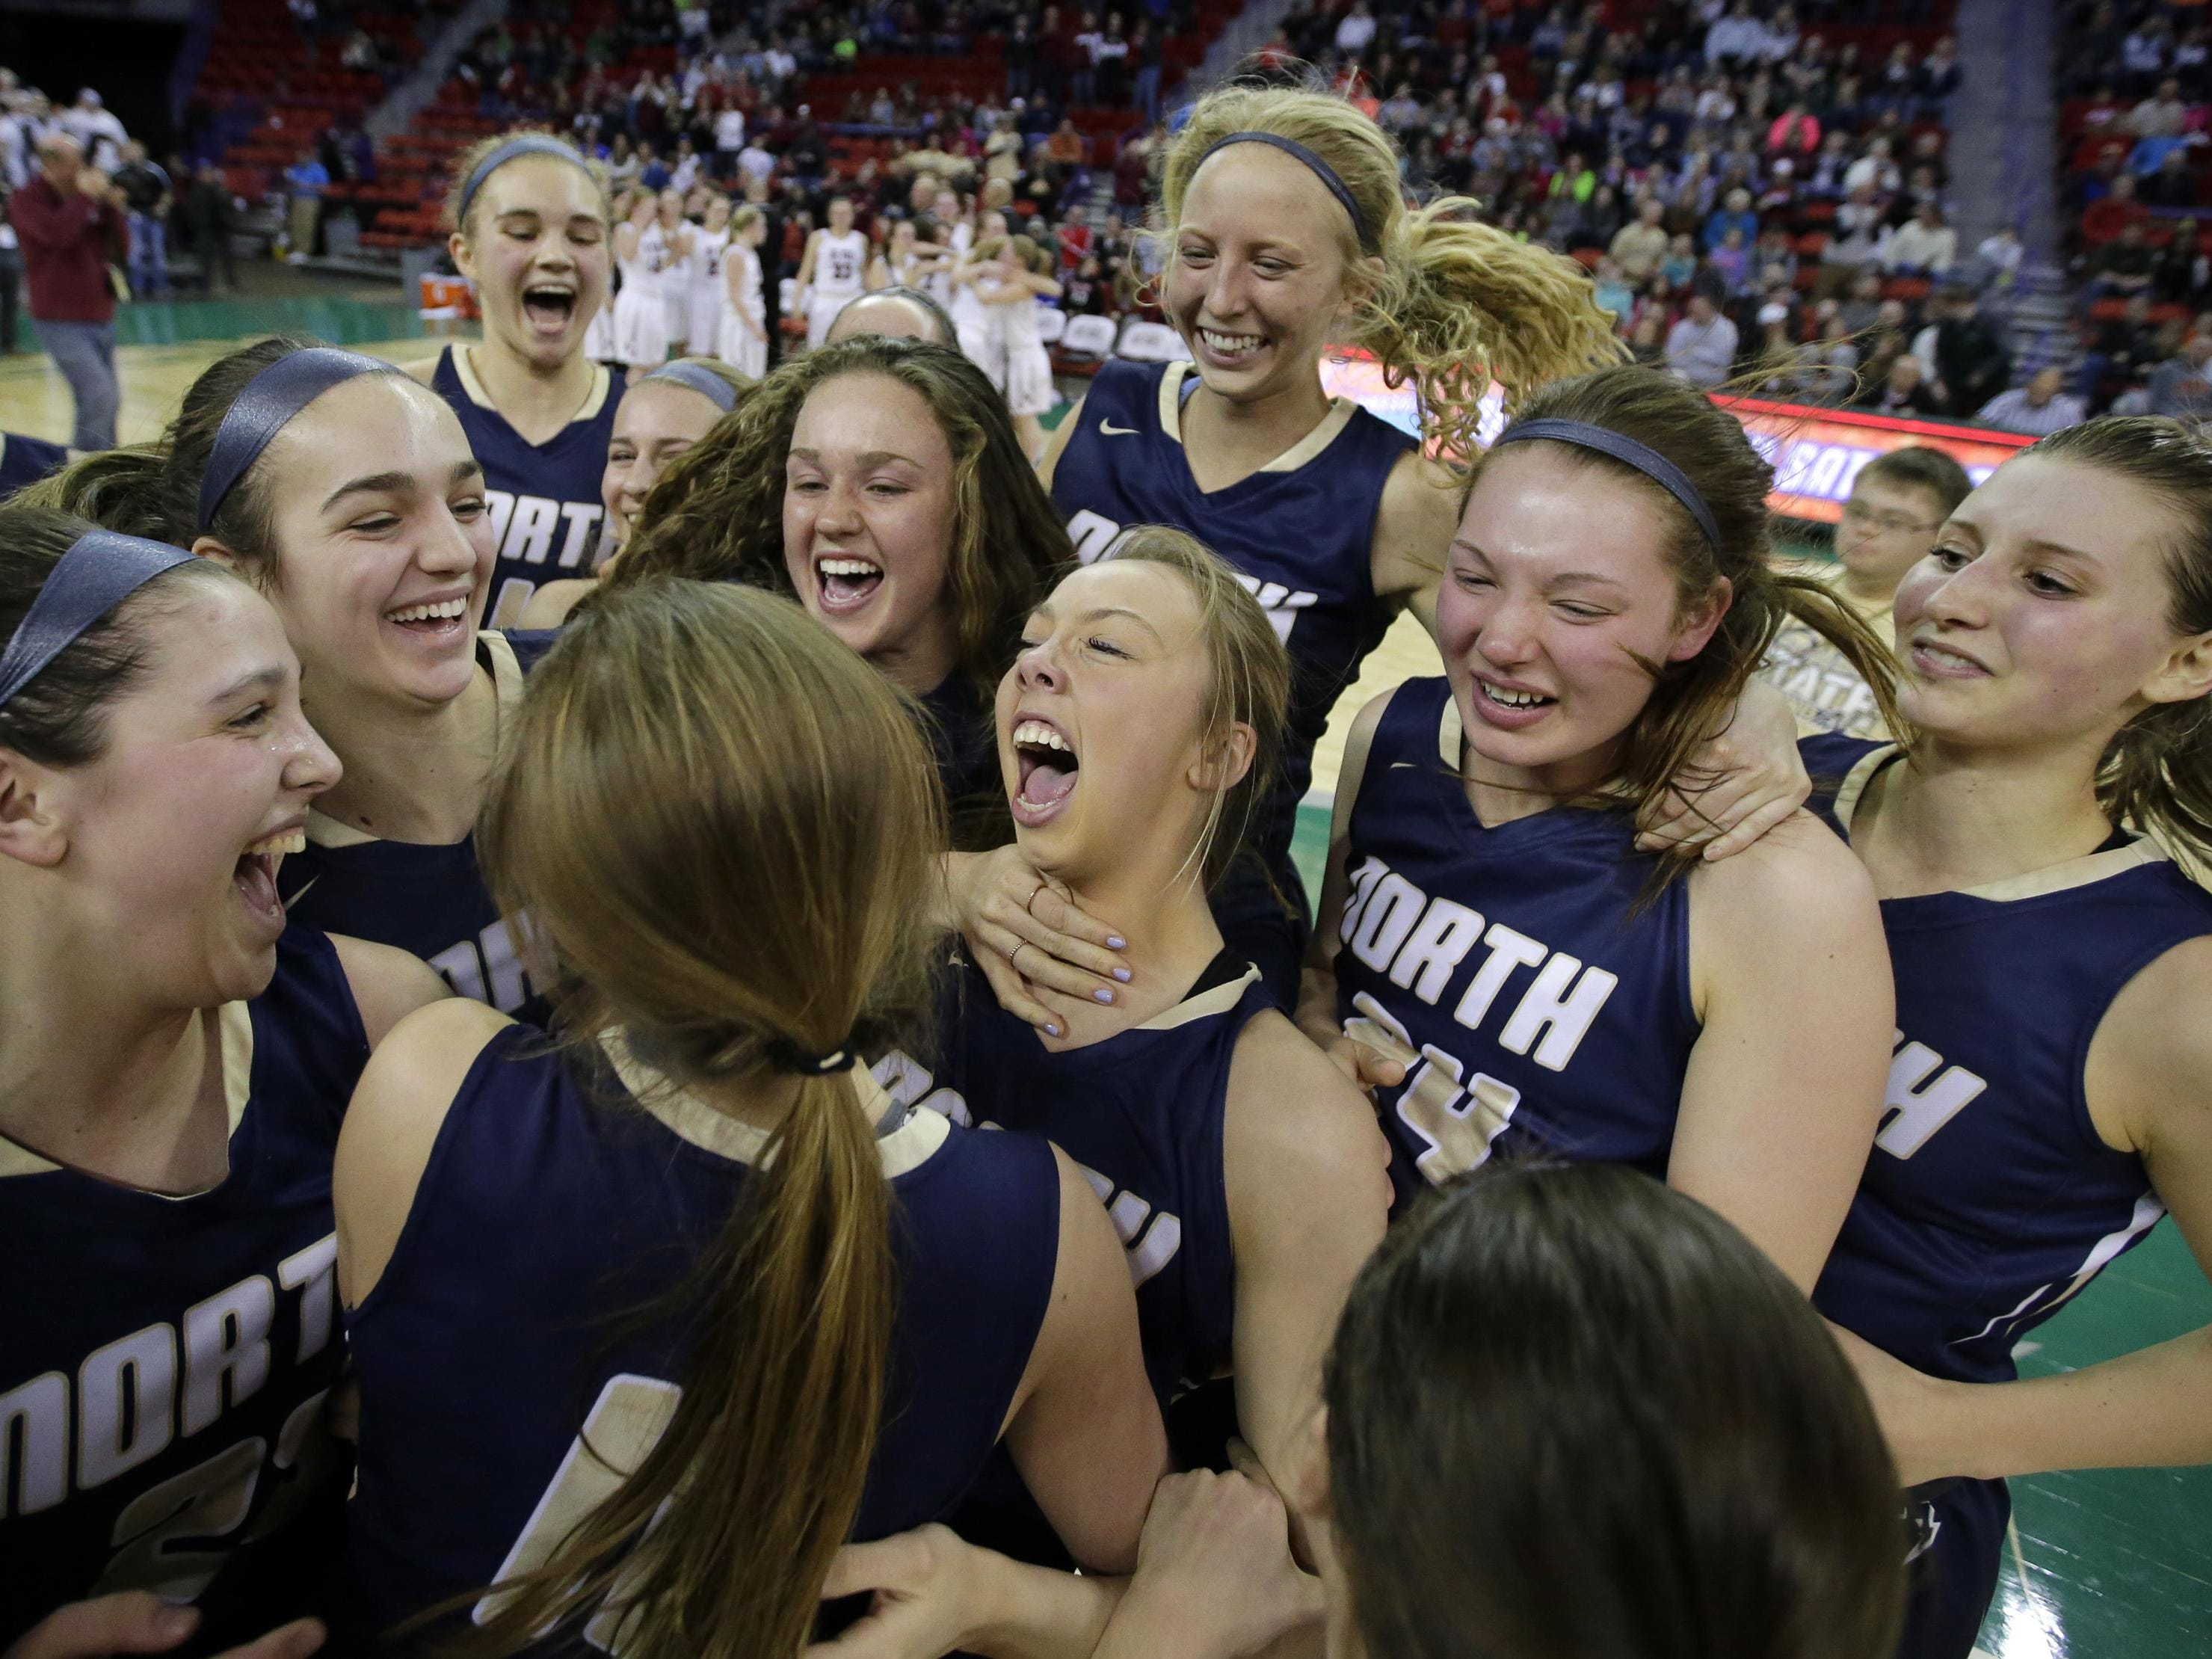 Appleton North players celebrate their victory against De Pere in the WIAA Division 1 girls' basketball state championship game Saturday at the Resch Center in Ashwaubenon. It is the first state title for North, which finished the season undefeated.